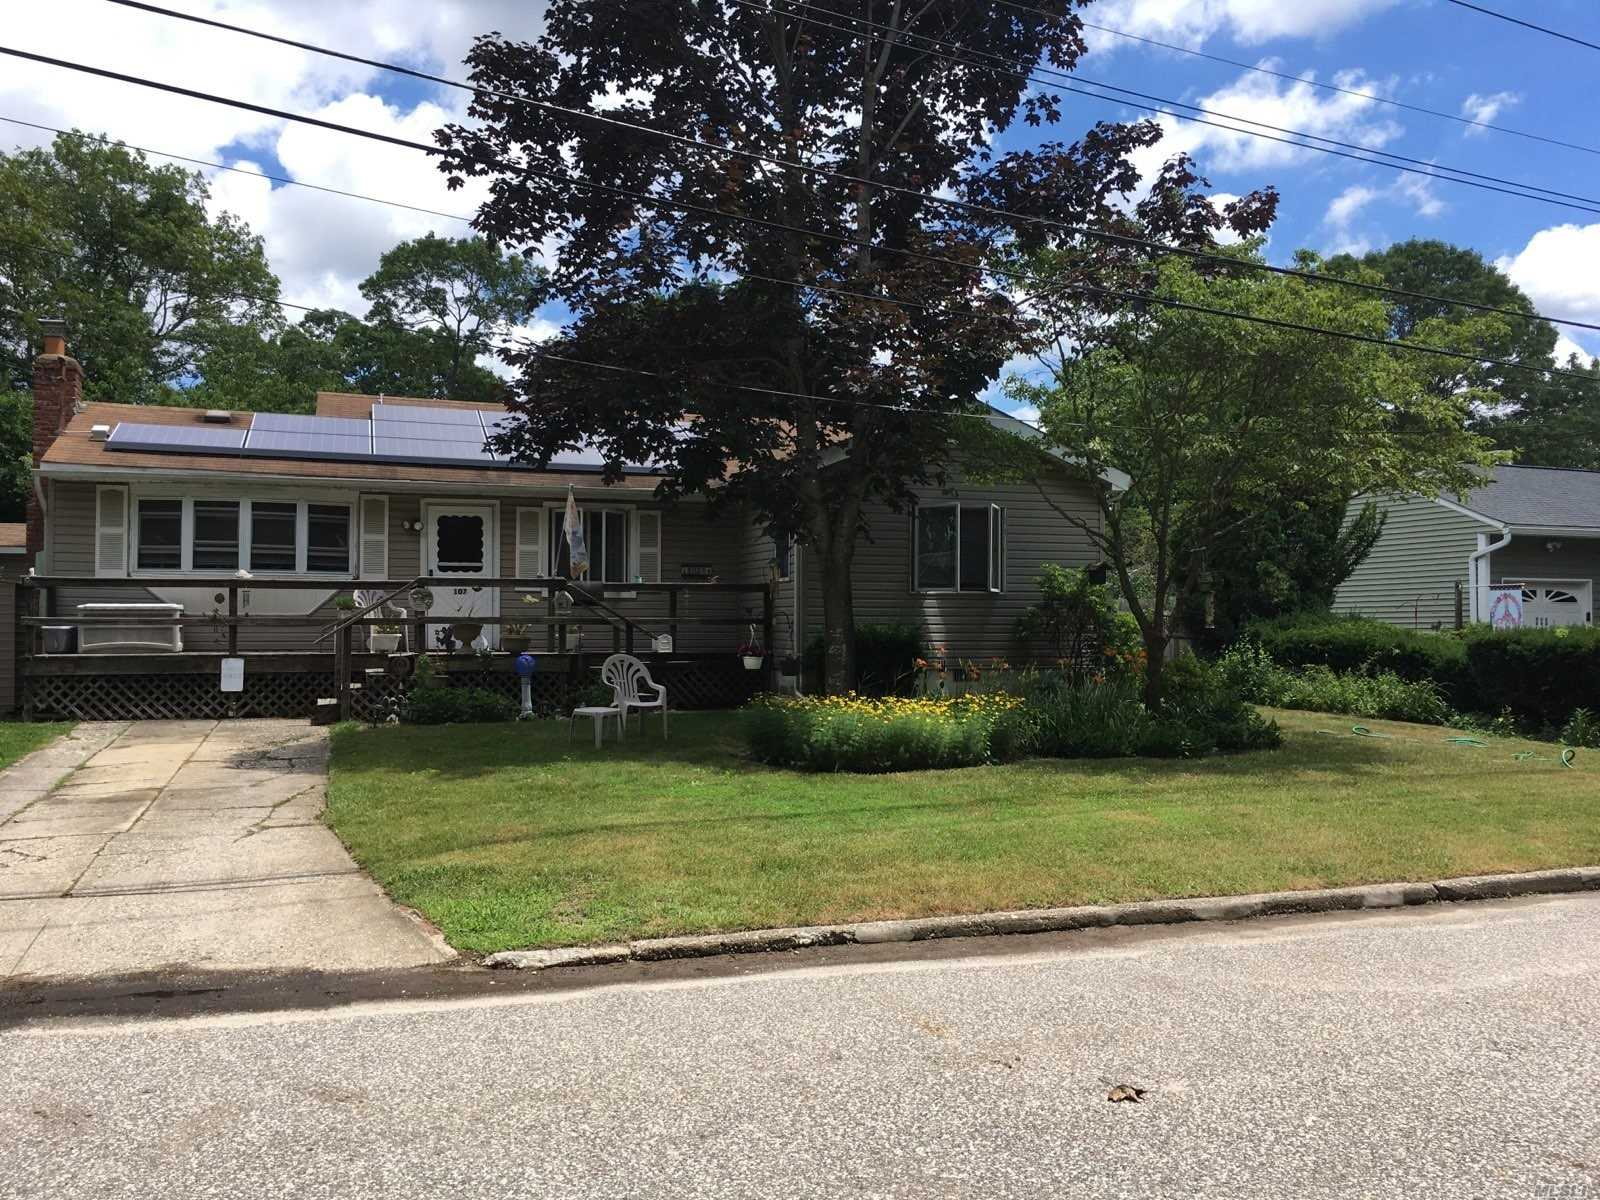 Photo of home for sale at 107 Andreano Ave, East Patchogue NY